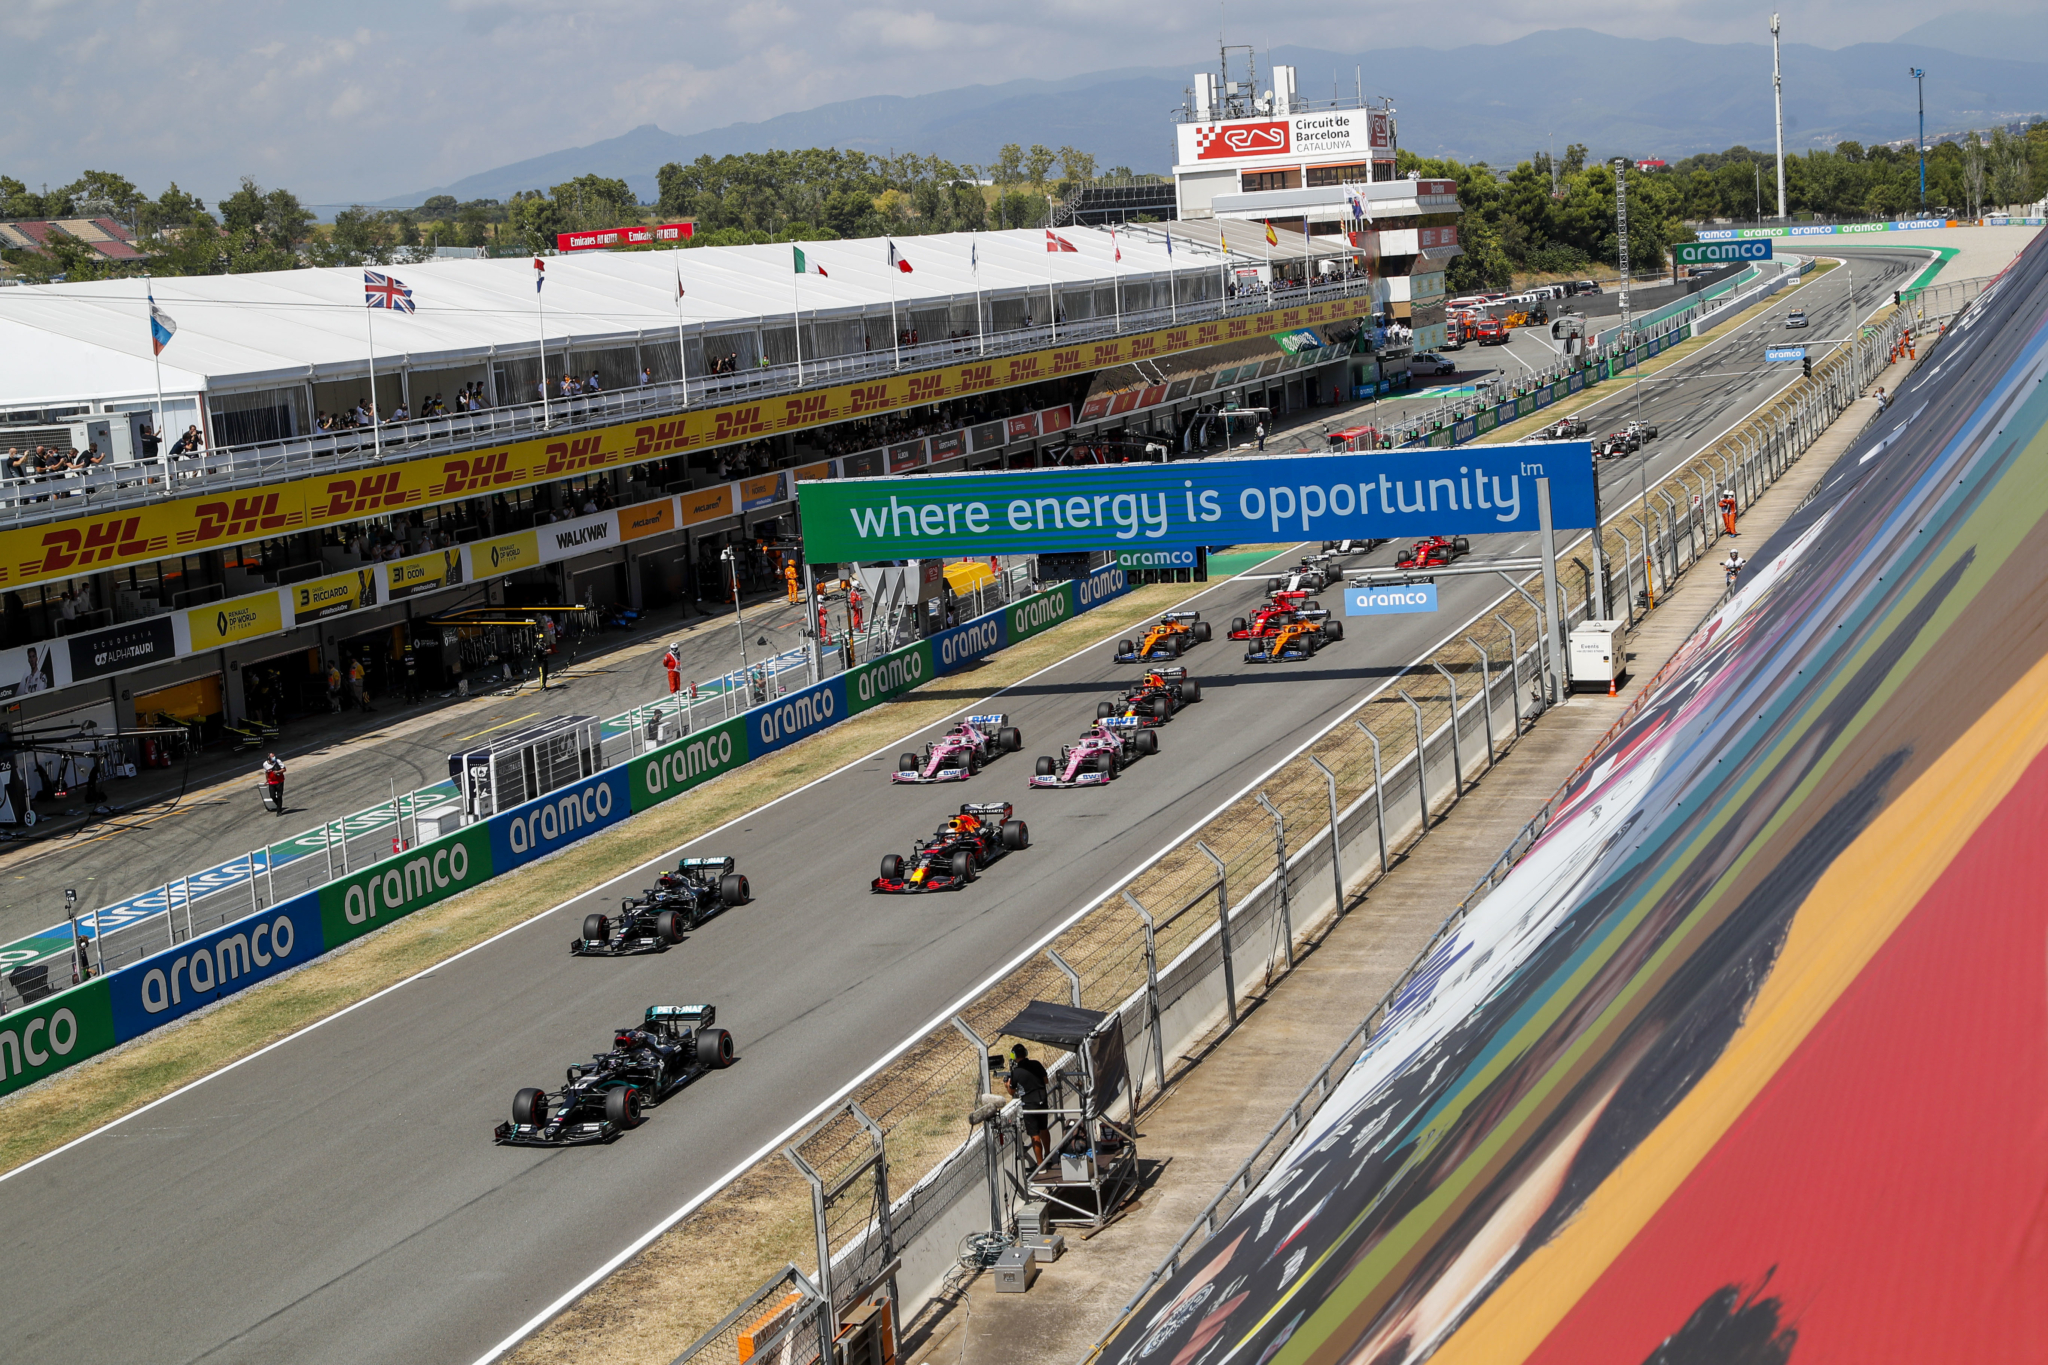 F1 tyre management challenges in near 50-degree Spanish GP